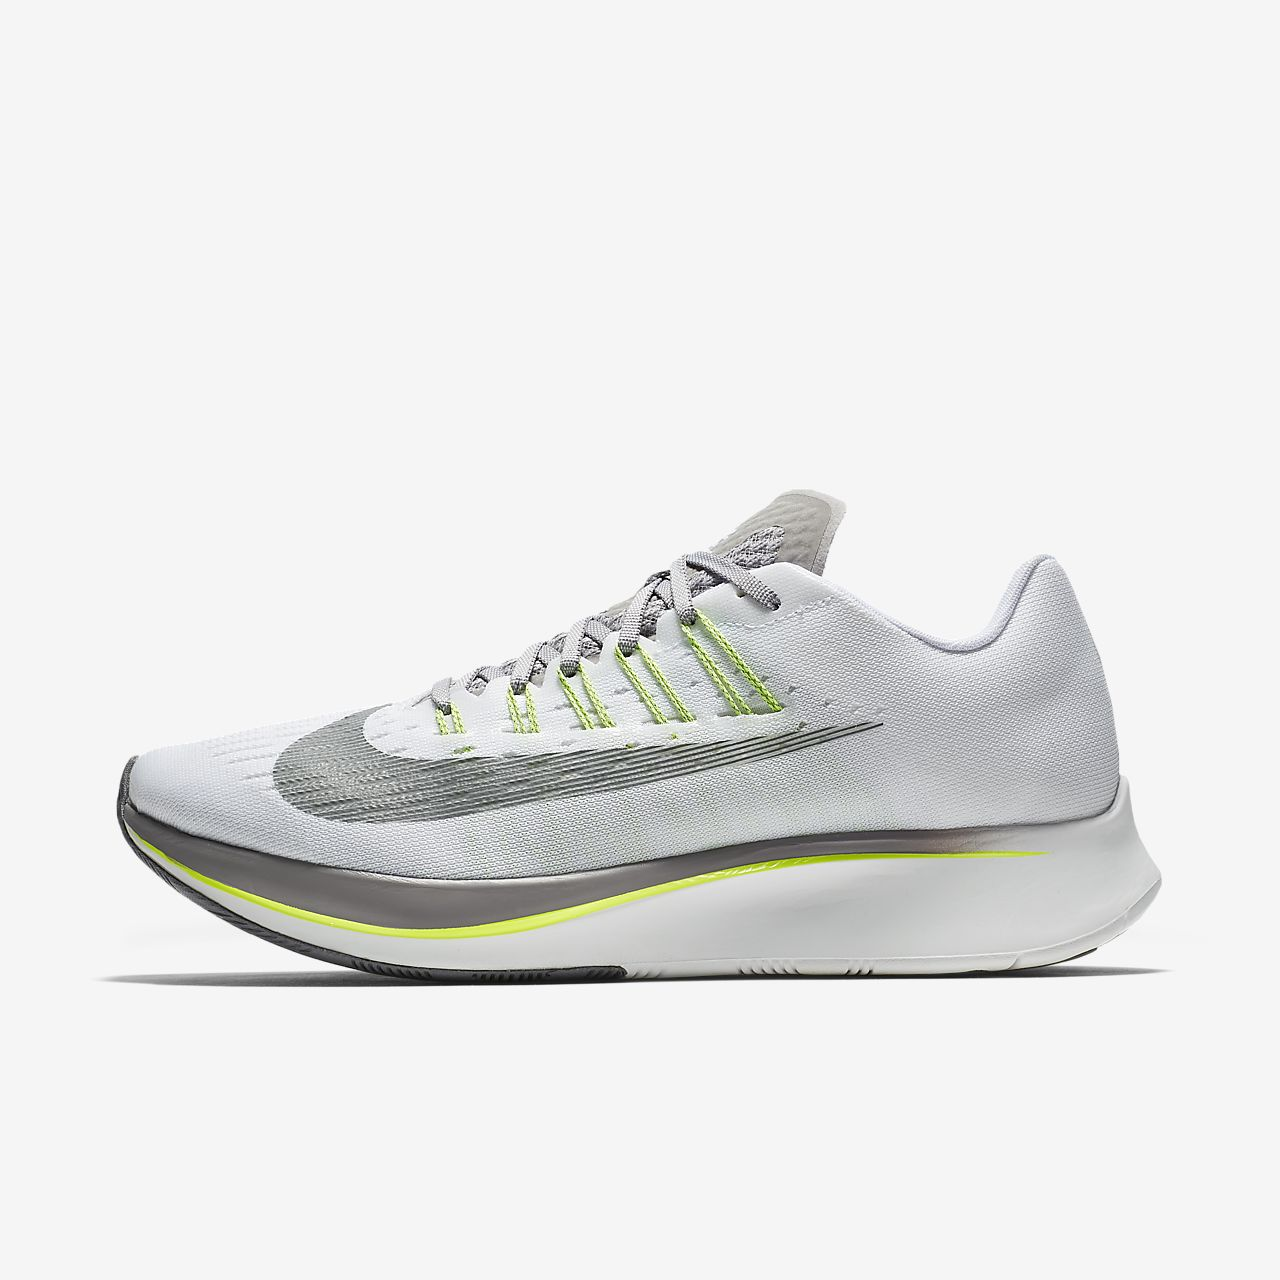 sports shoes 5a58b 9c239 ... Nike Zoom Fly Men s Running Shoe